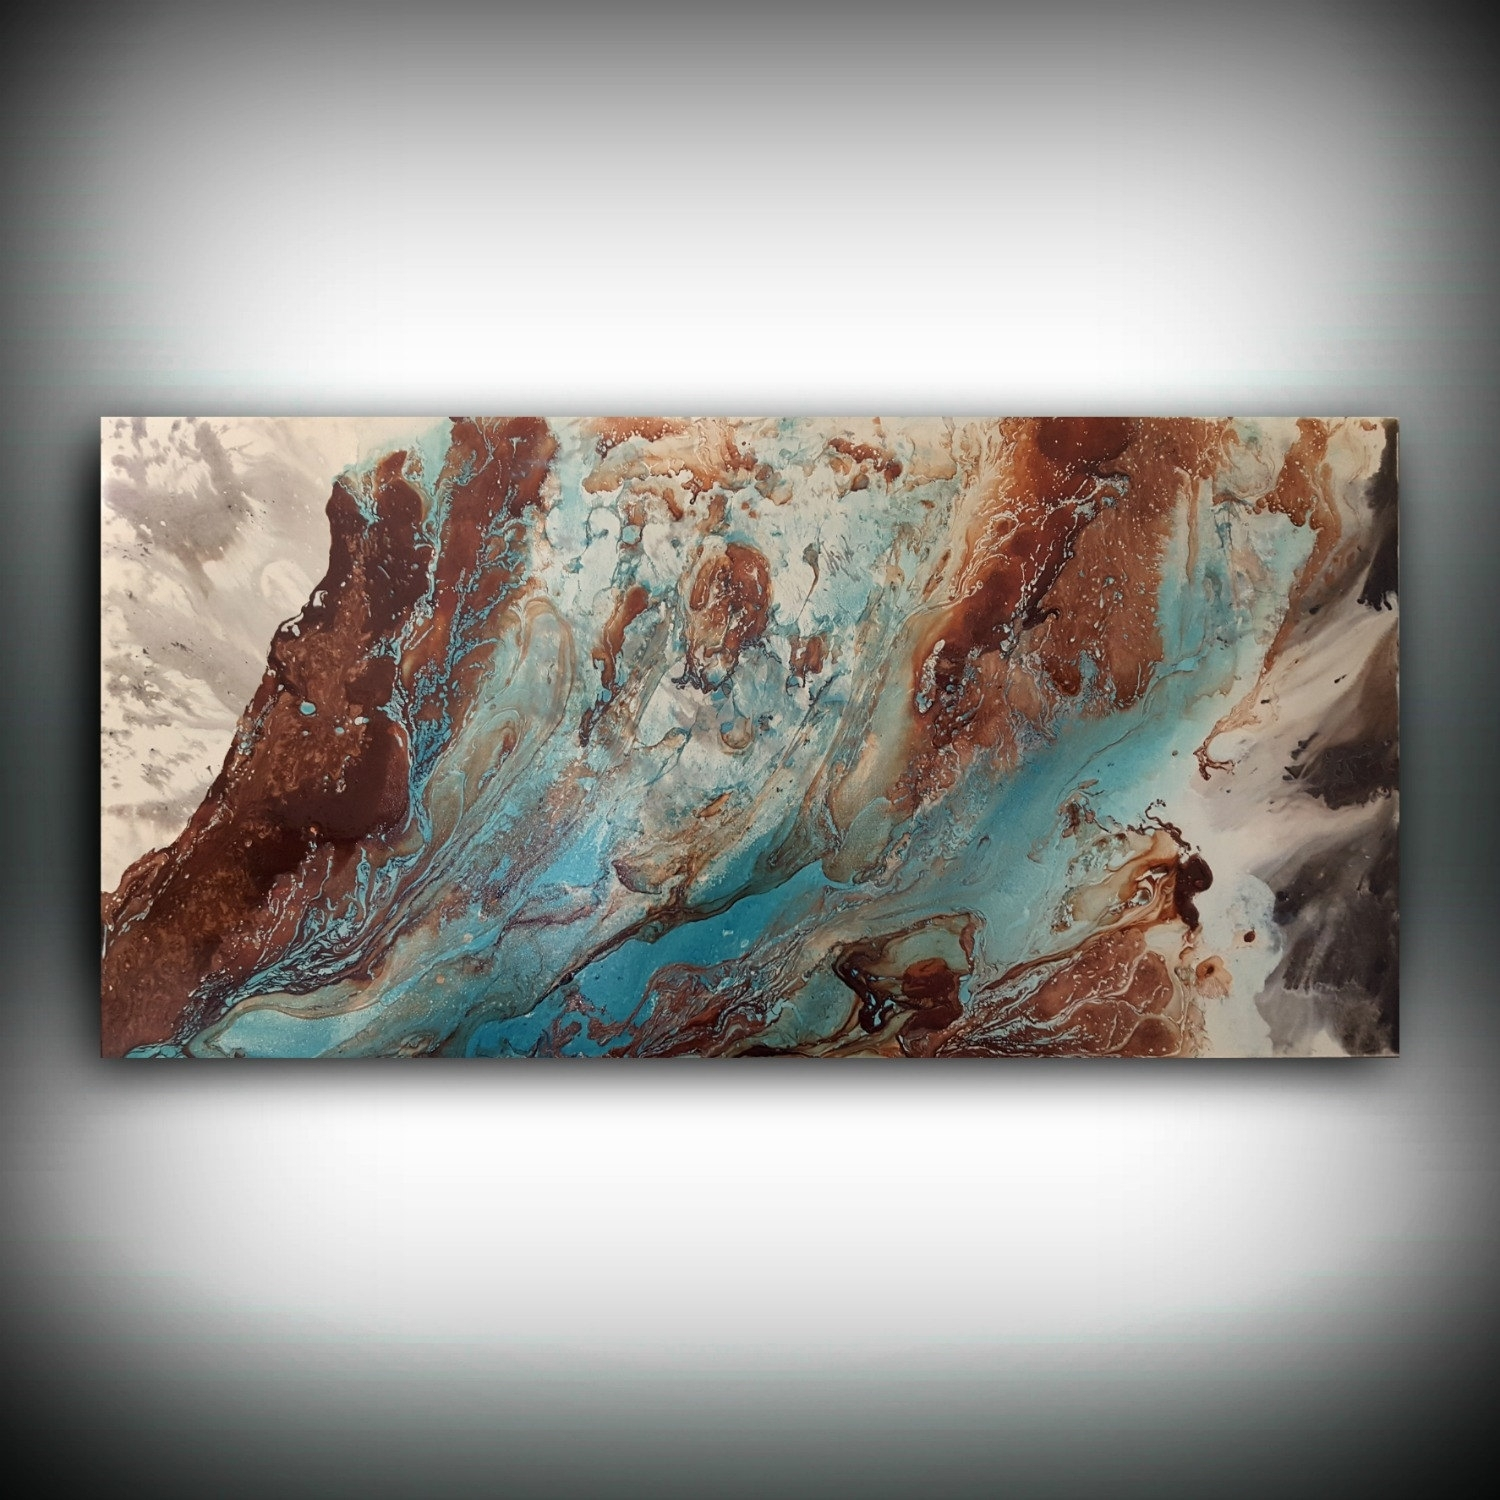 Original Painting, Art Painting Acrylic Painting Abstract Painting Intended For Most Current Blue And Brown Abstract Wall Art (View 8 of 18)